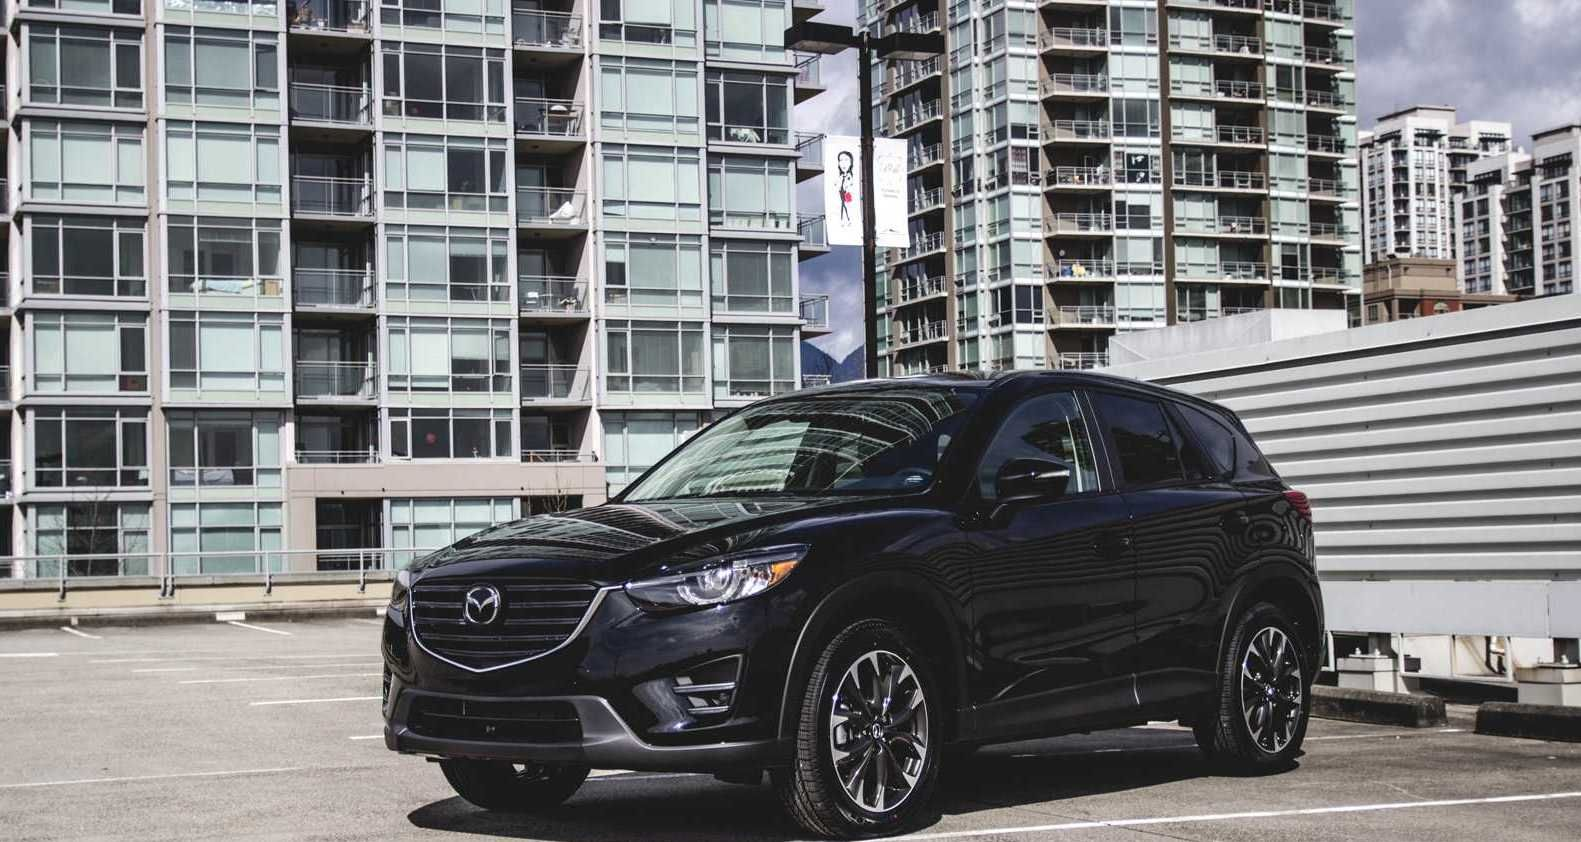 2016 Mazda Cx 5 Black Mazda Mazda Cx5 Family Car